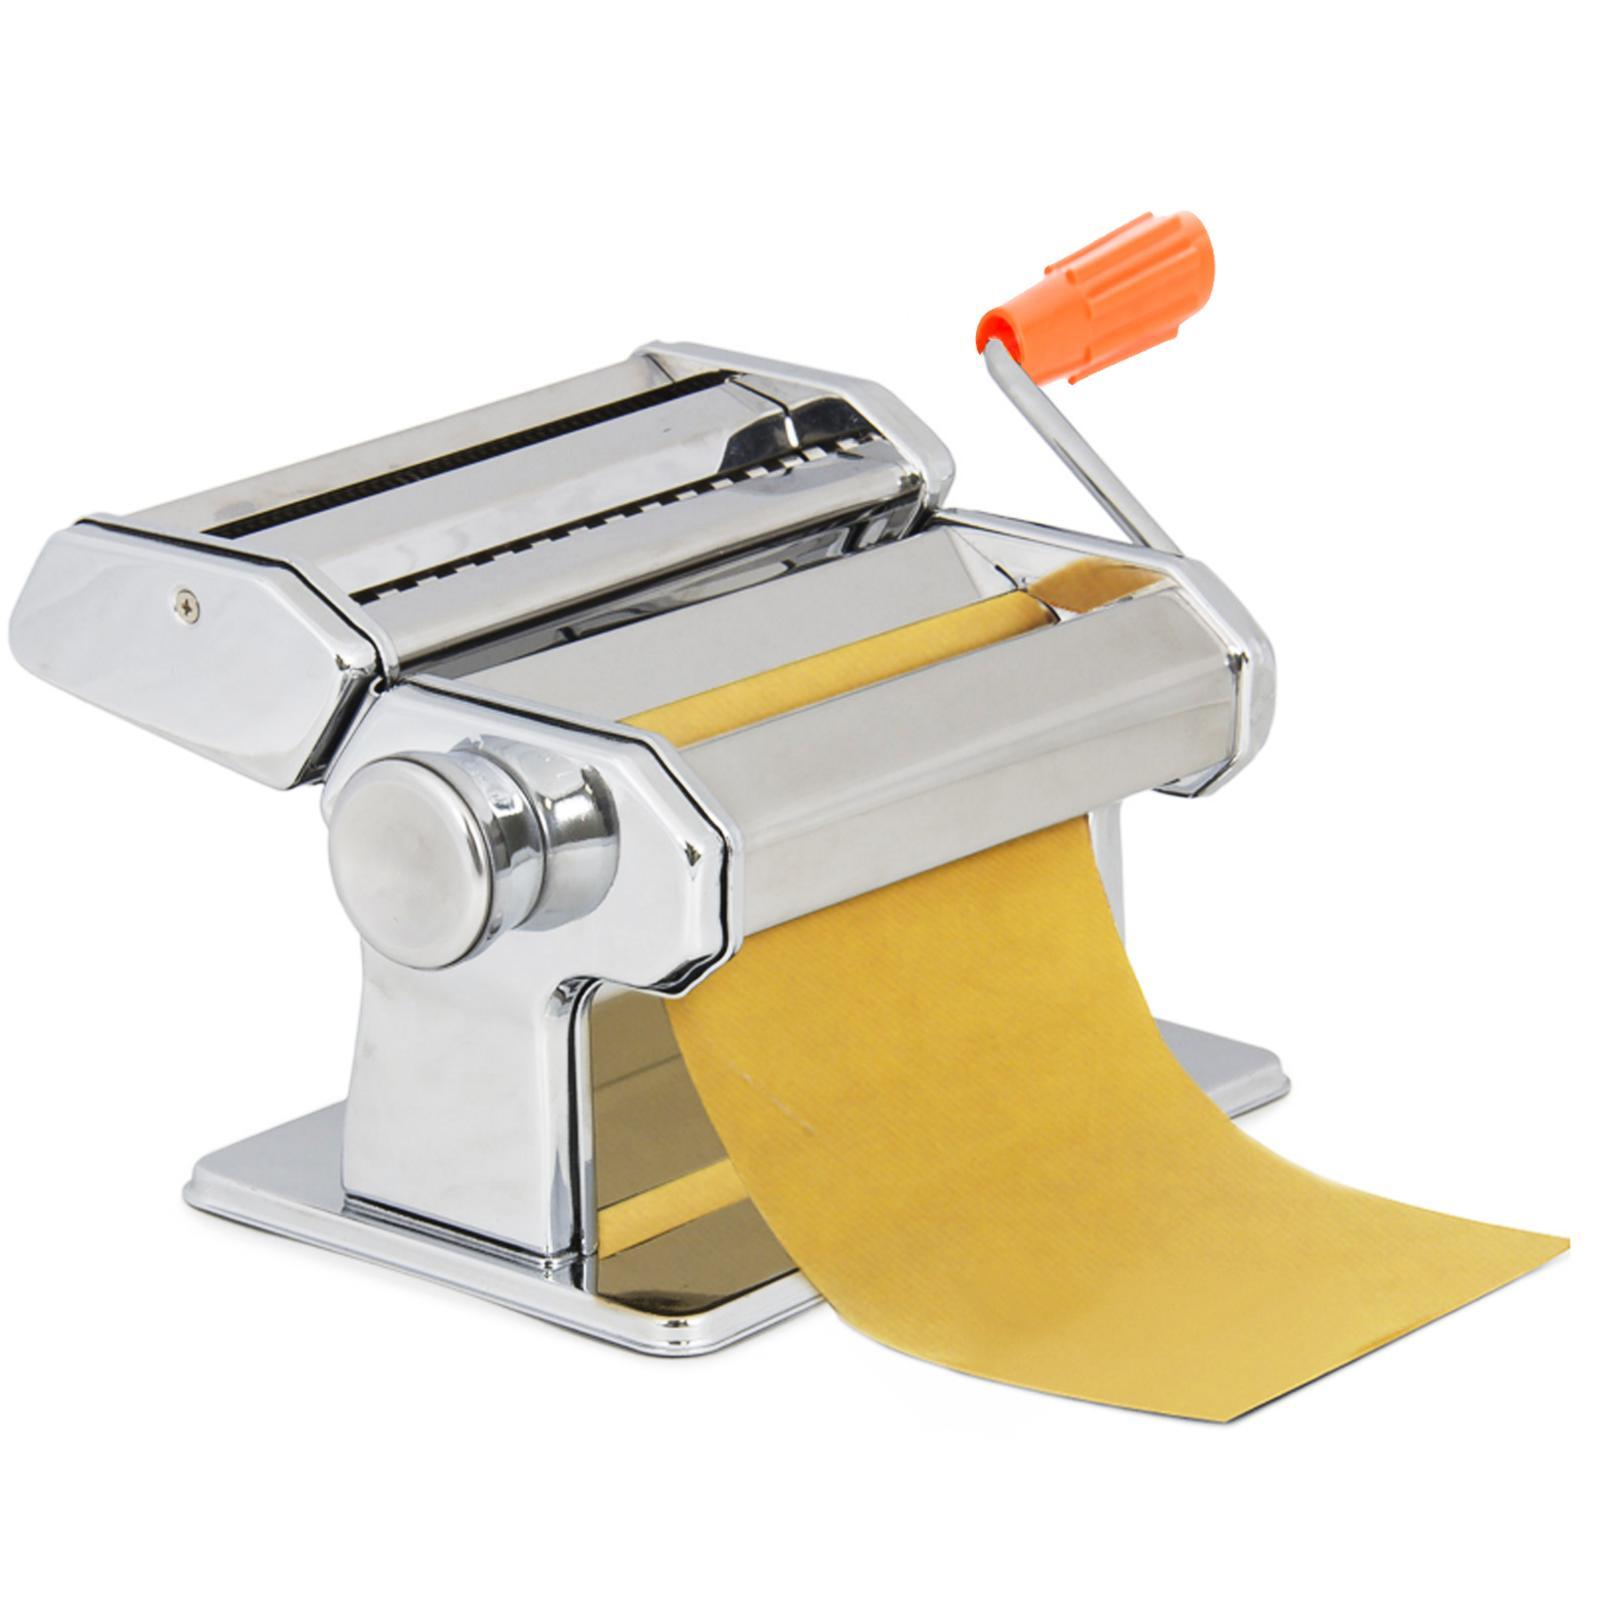 Home Kitchen Removable Stainless Steel Pasta Maker Noodle Making Dough Roller Cutter Machine- 2 Blades